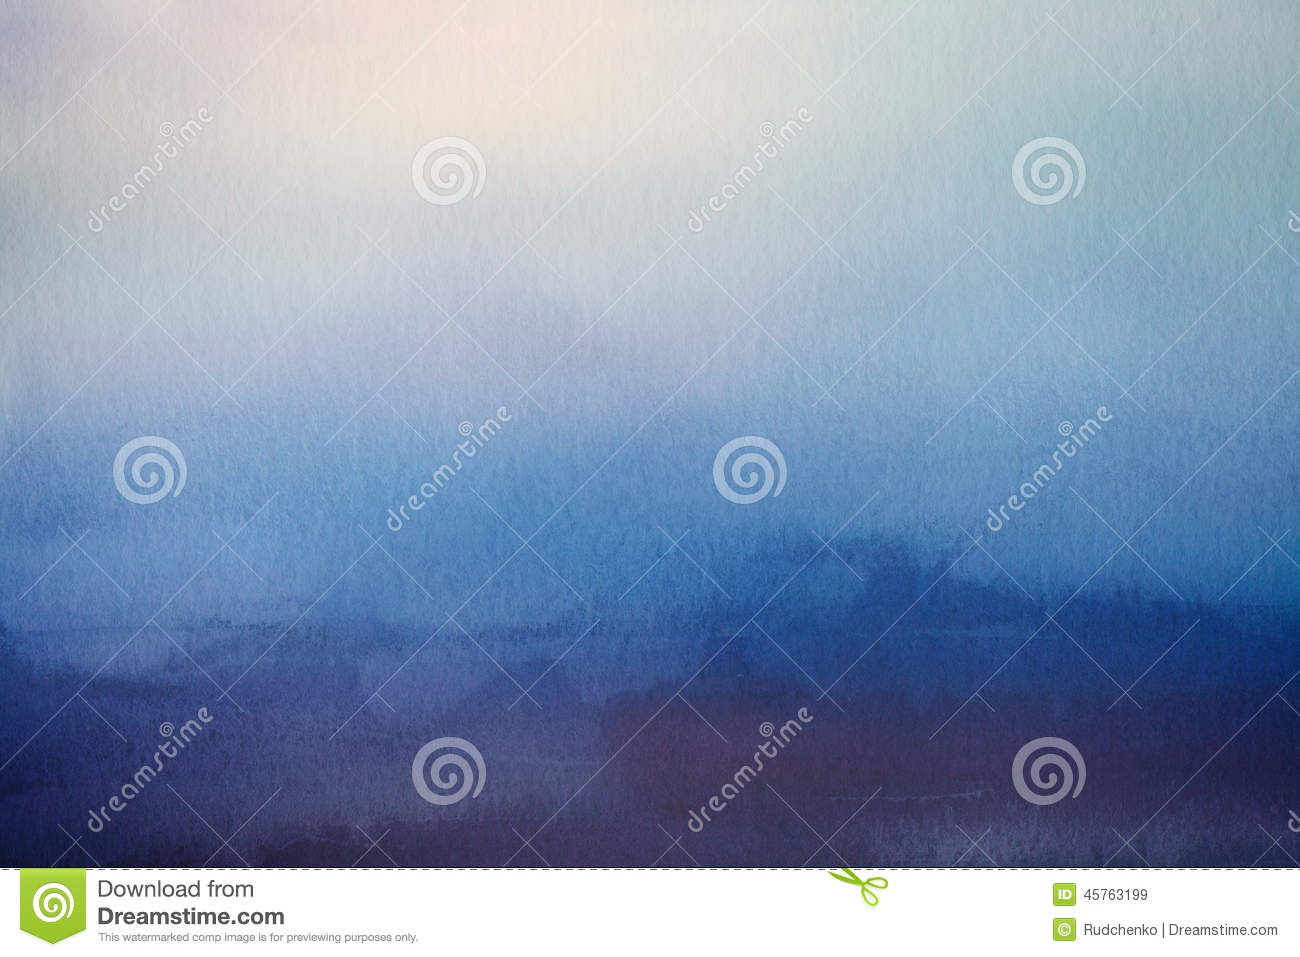 Abstract blur background. Watercolor paper overlay.